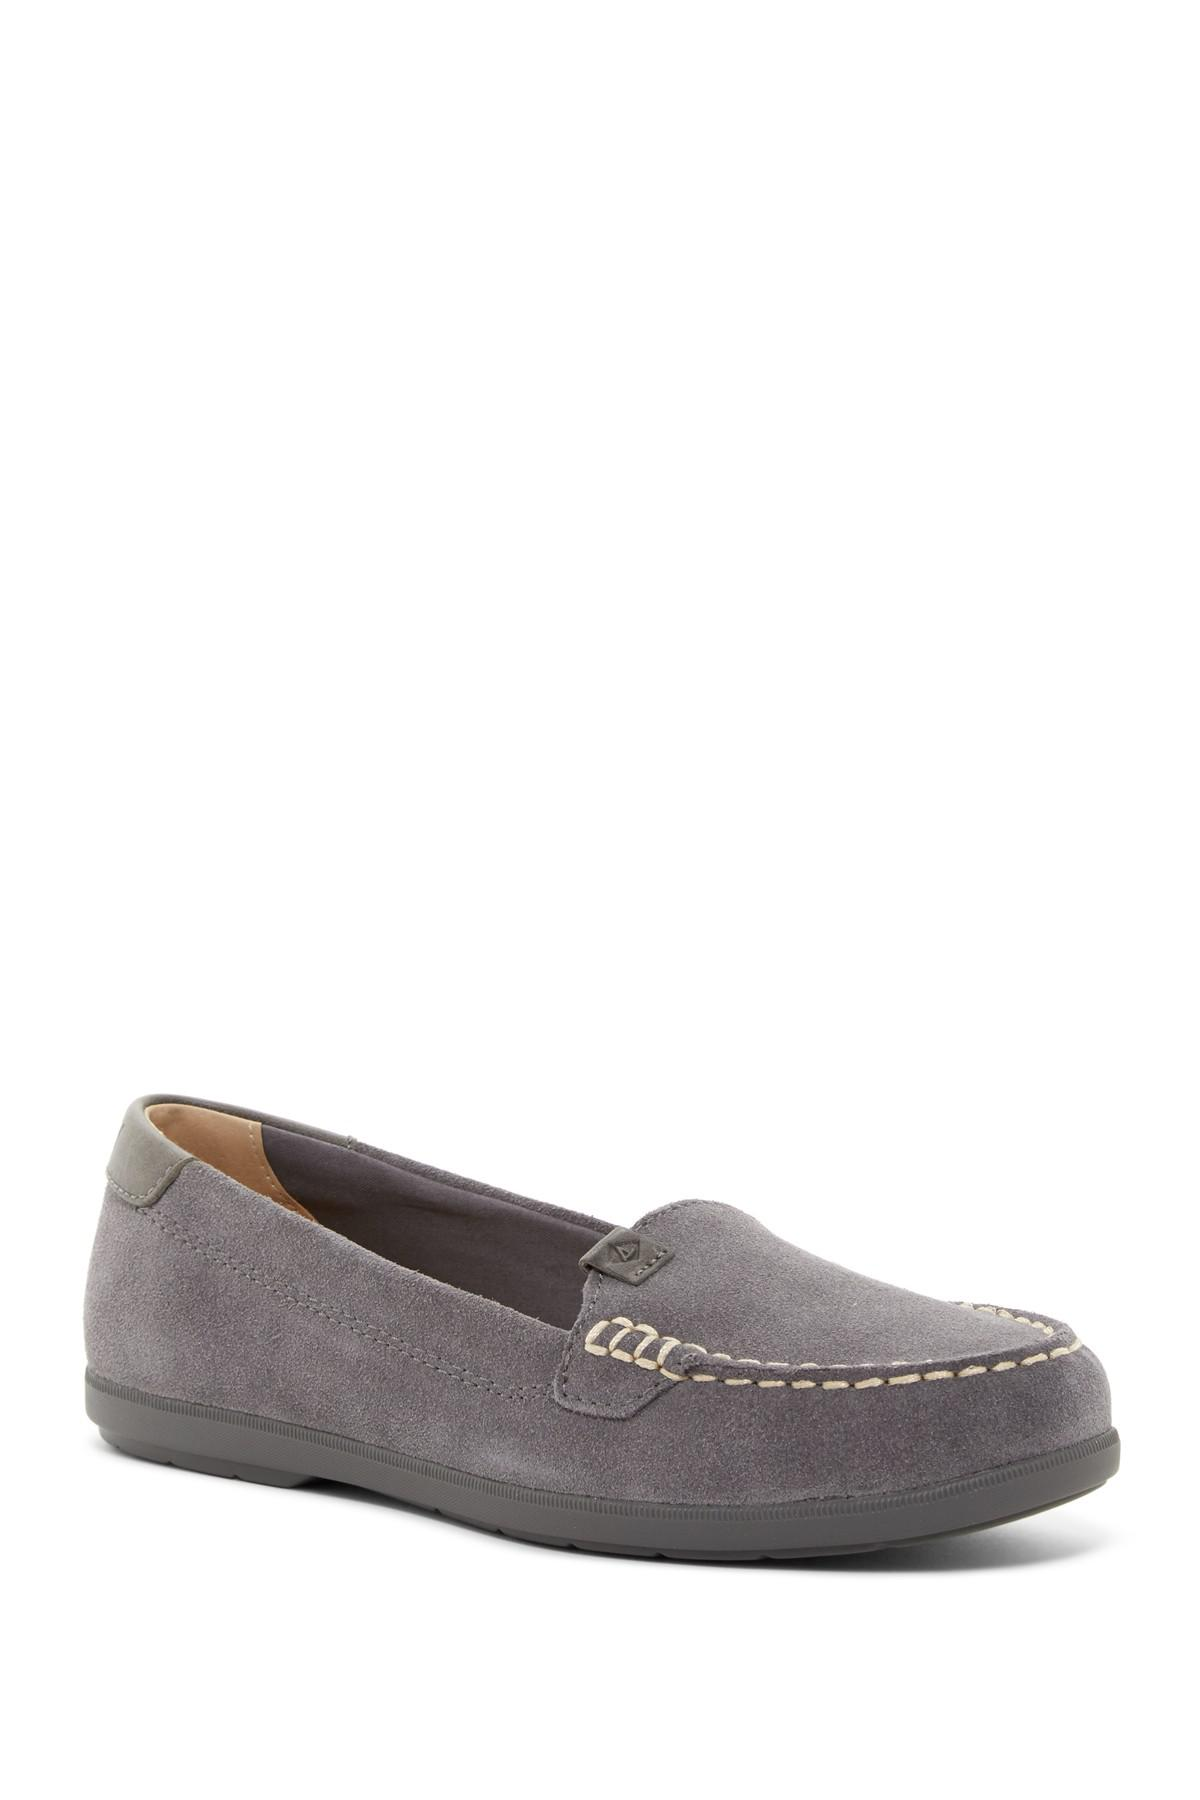 4e967cb18d6 Lyst - Sperry Top-Sider Coil Mia Loafer in Gray